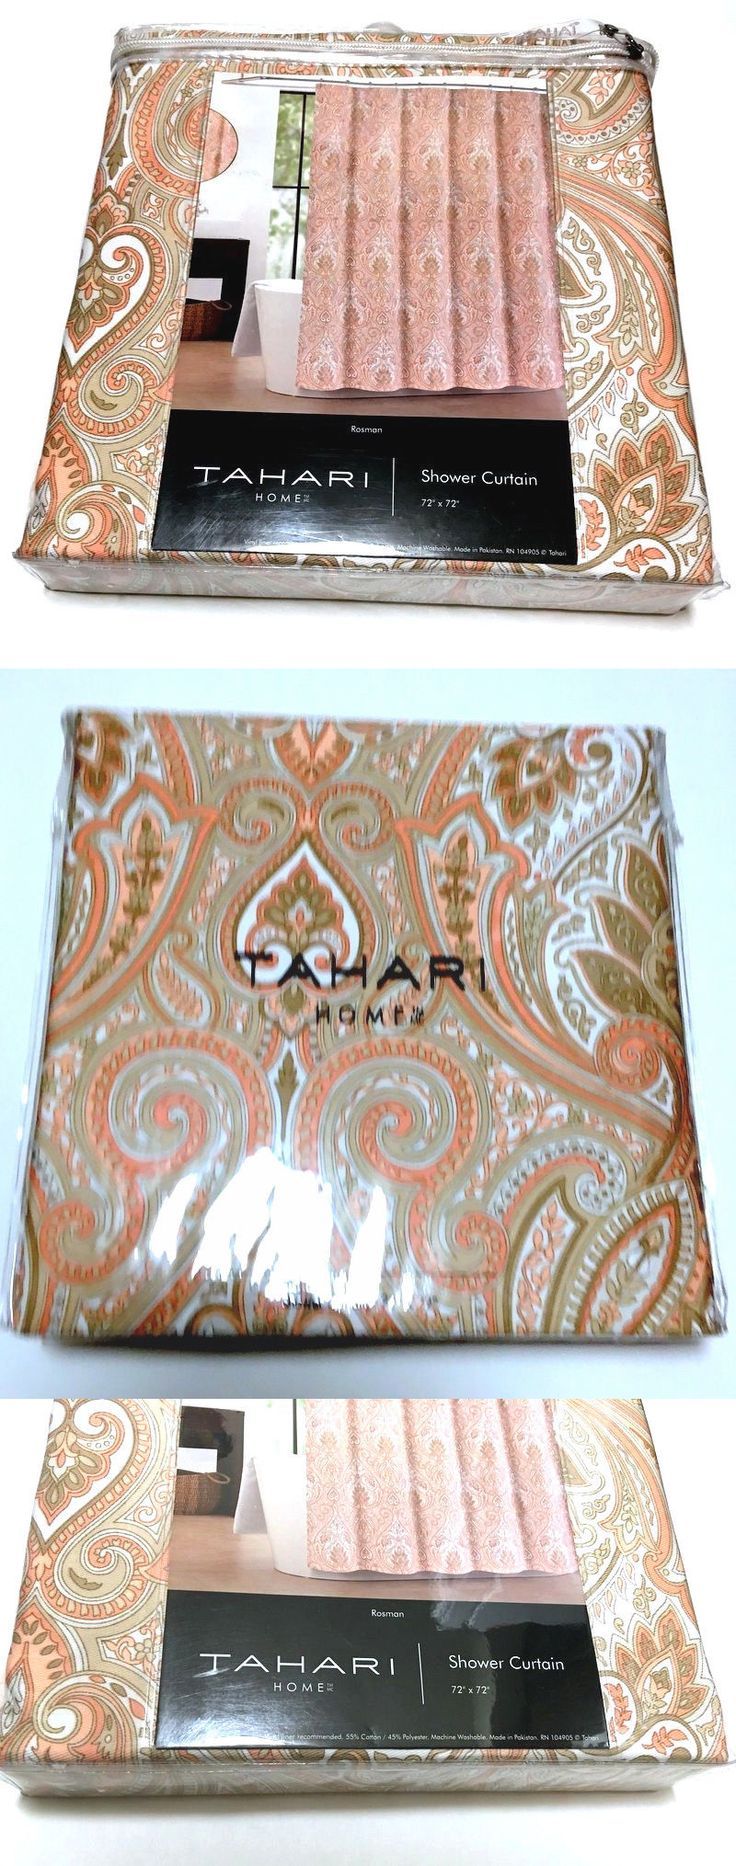 Christmas shower curtains on ebay - Shower Curtains 20441 Tahari Home Rosman Pink Coral Orange Beige Paisley Fabric Shower Curtain 72